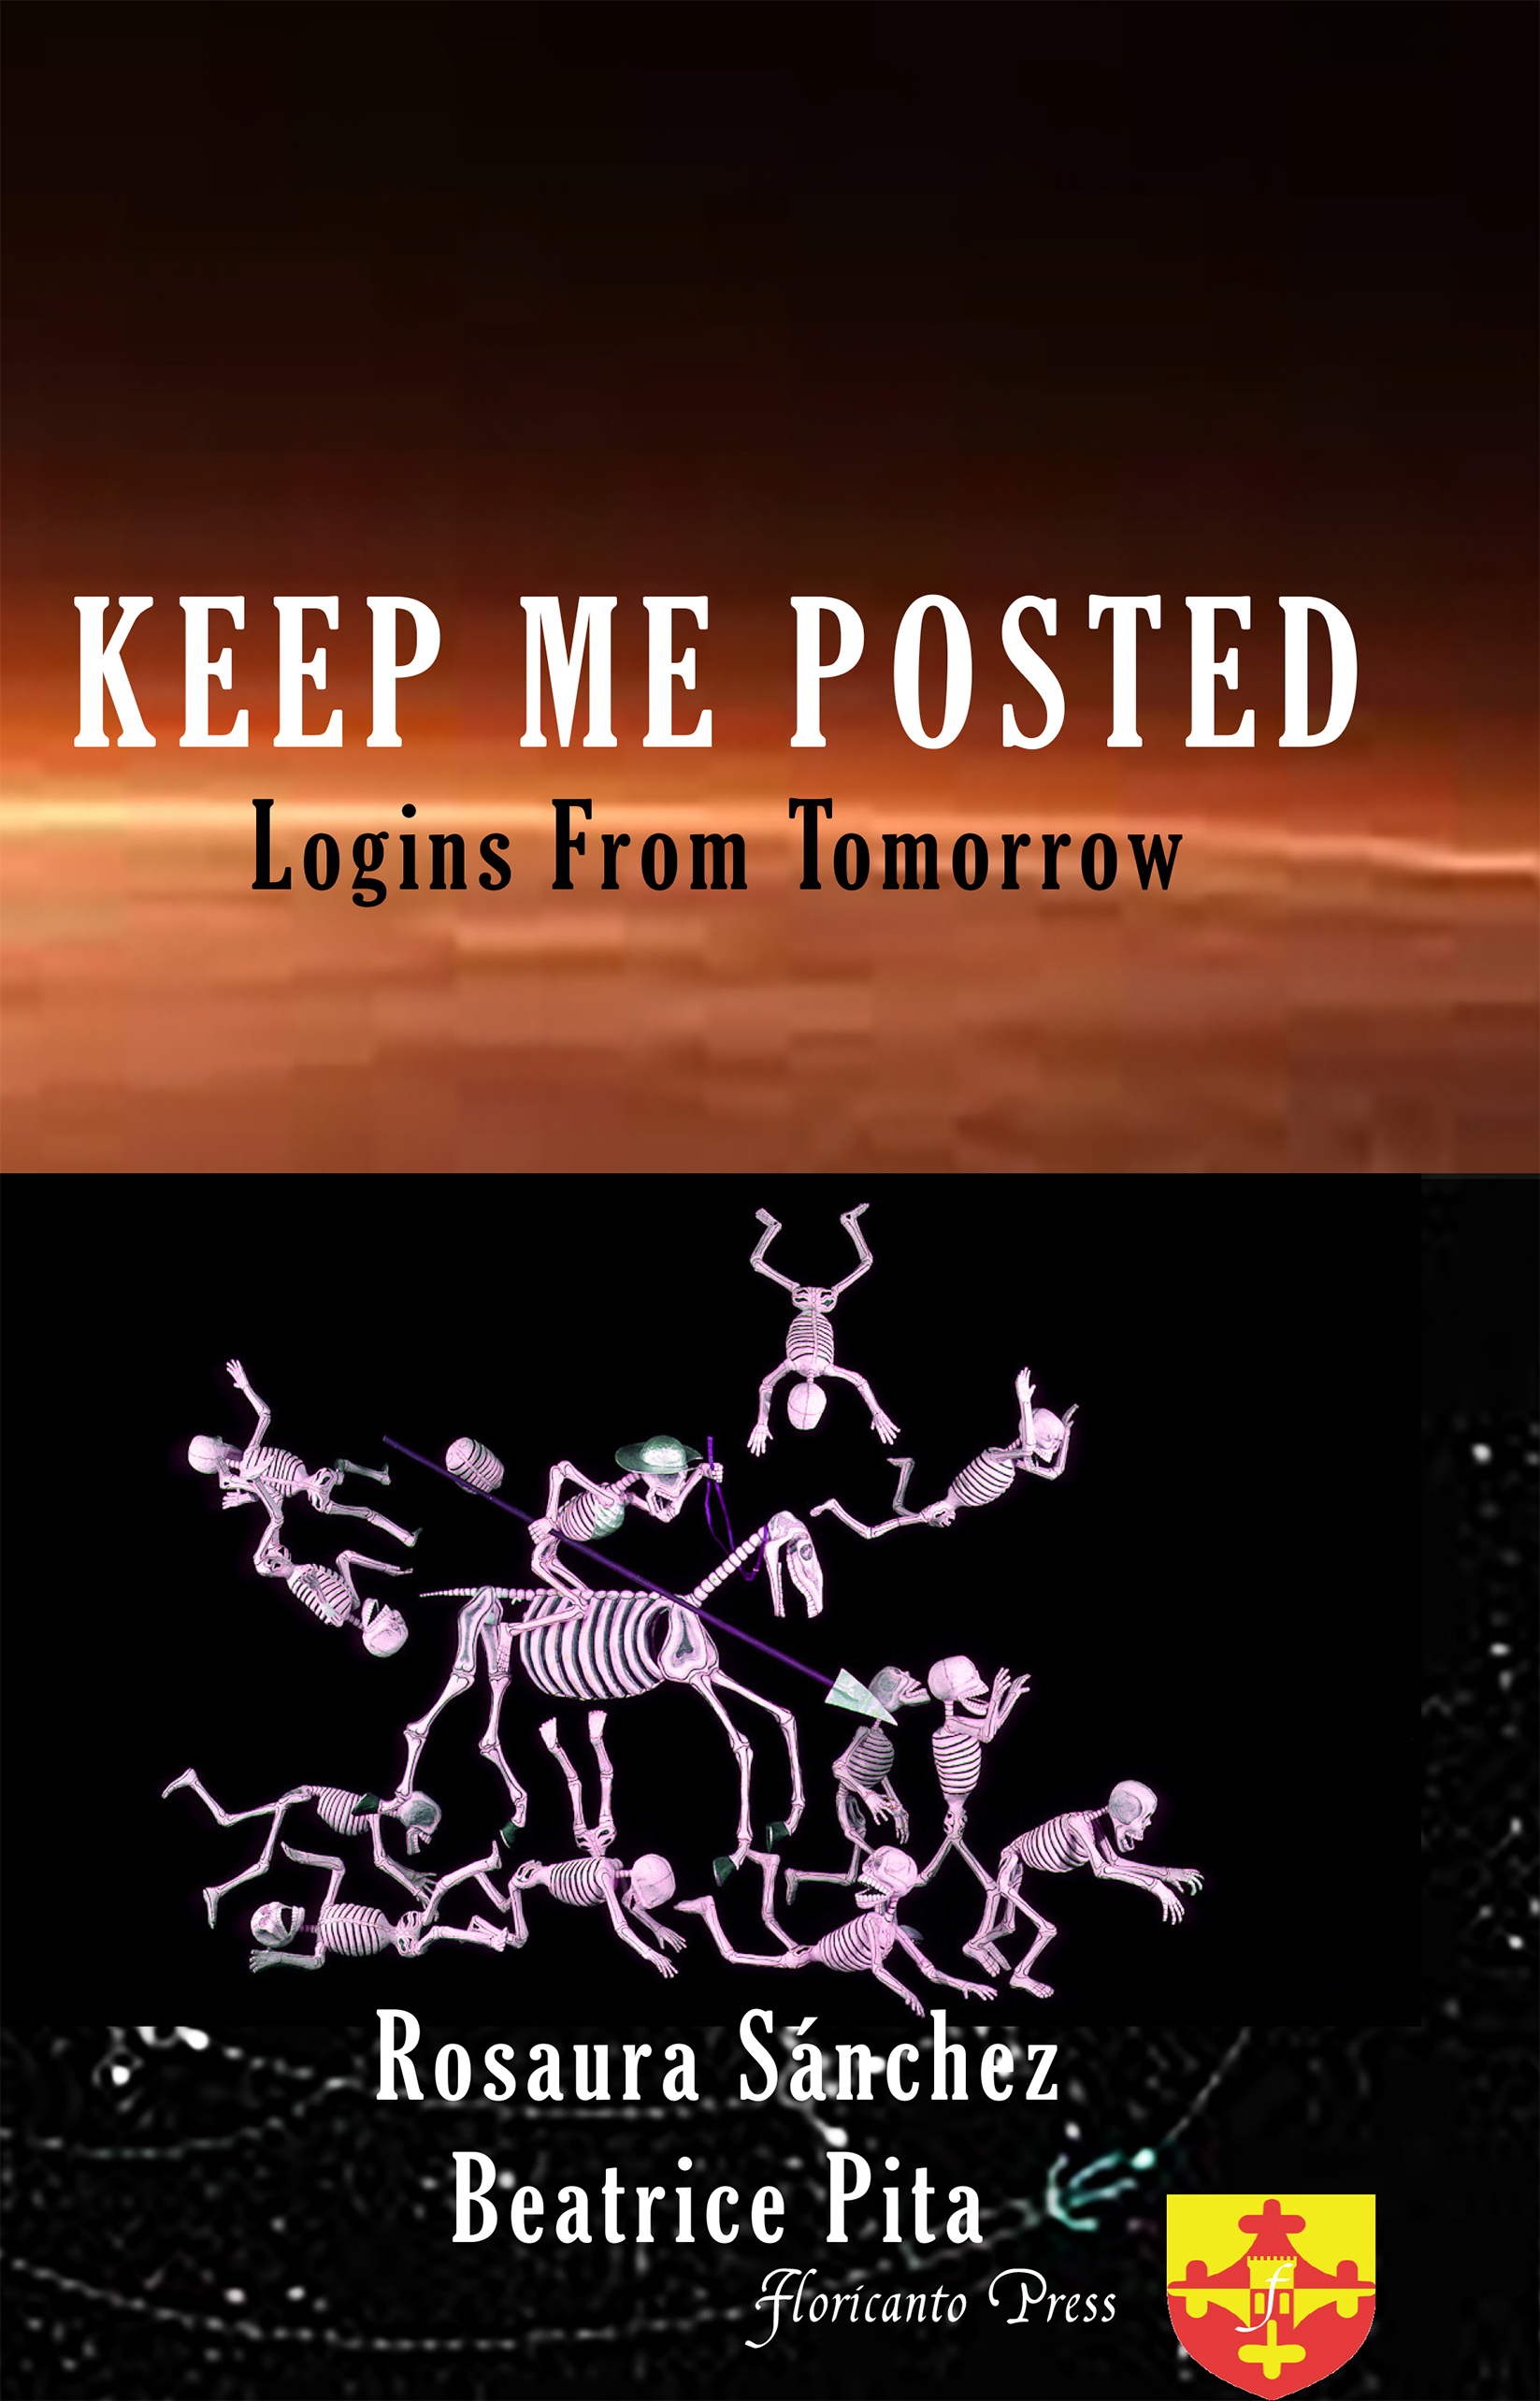 Keep Me Posted: Logins from Tomorrow. By Rosaura Sanchez and Beatrice Pita.